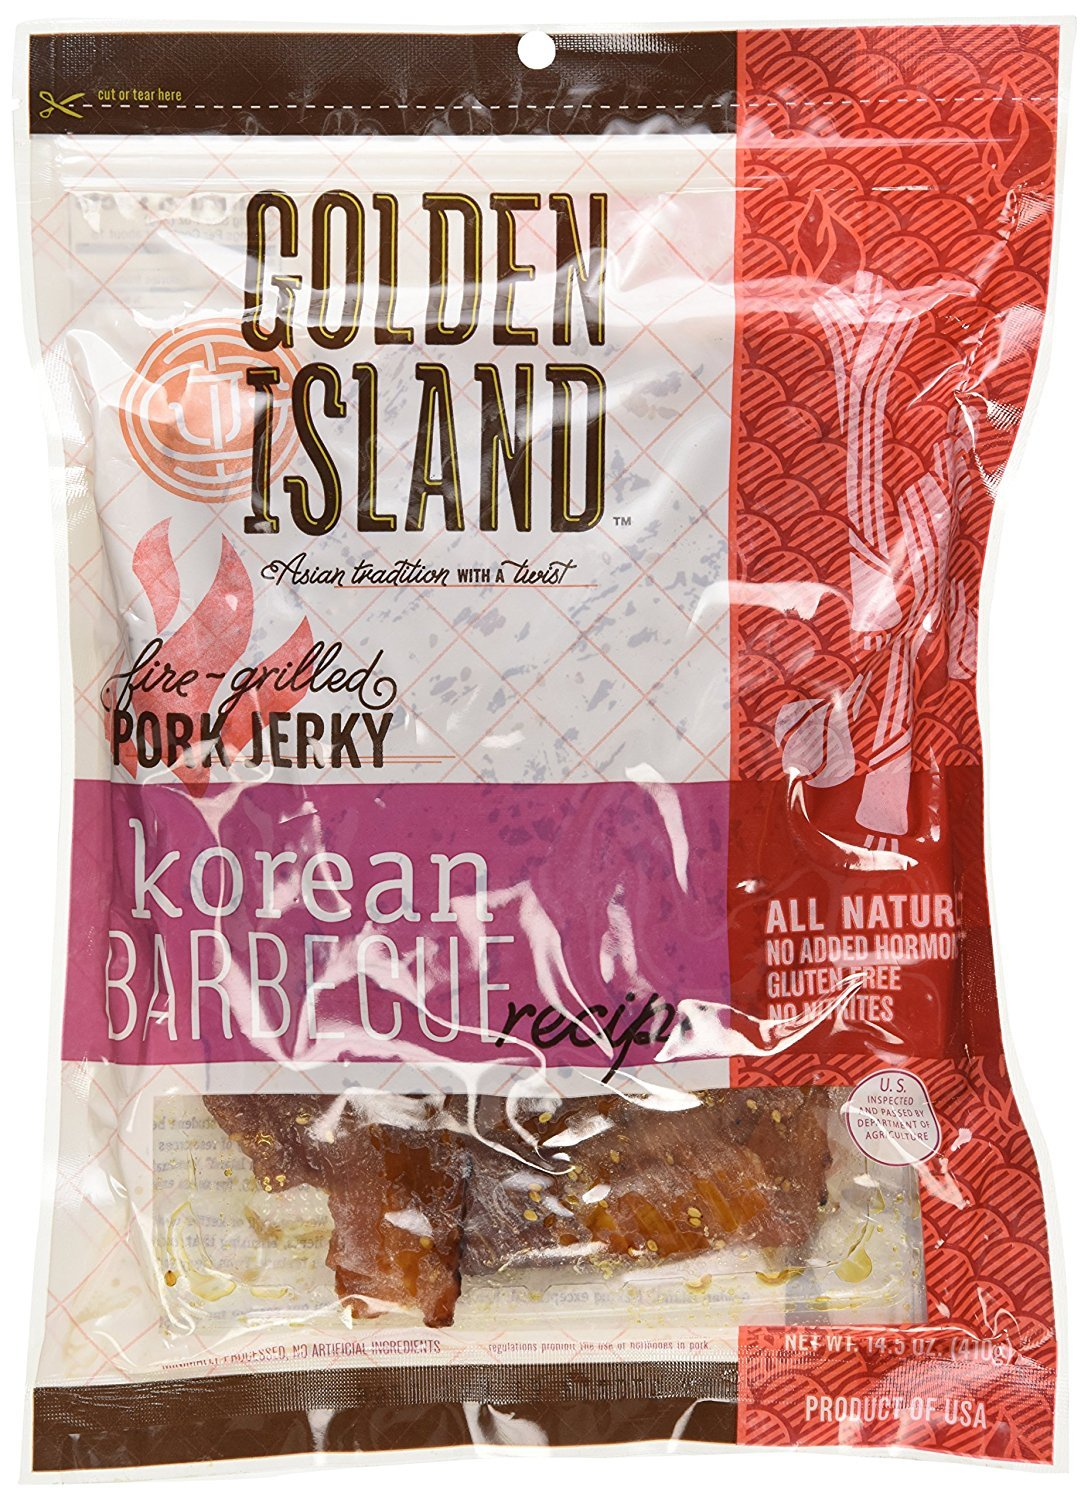 Golden Island Natural Style Pork Jerky, Korean Barbecue Recipe, 14.5oz (Pack of 3) by Golden Island (Image #2)